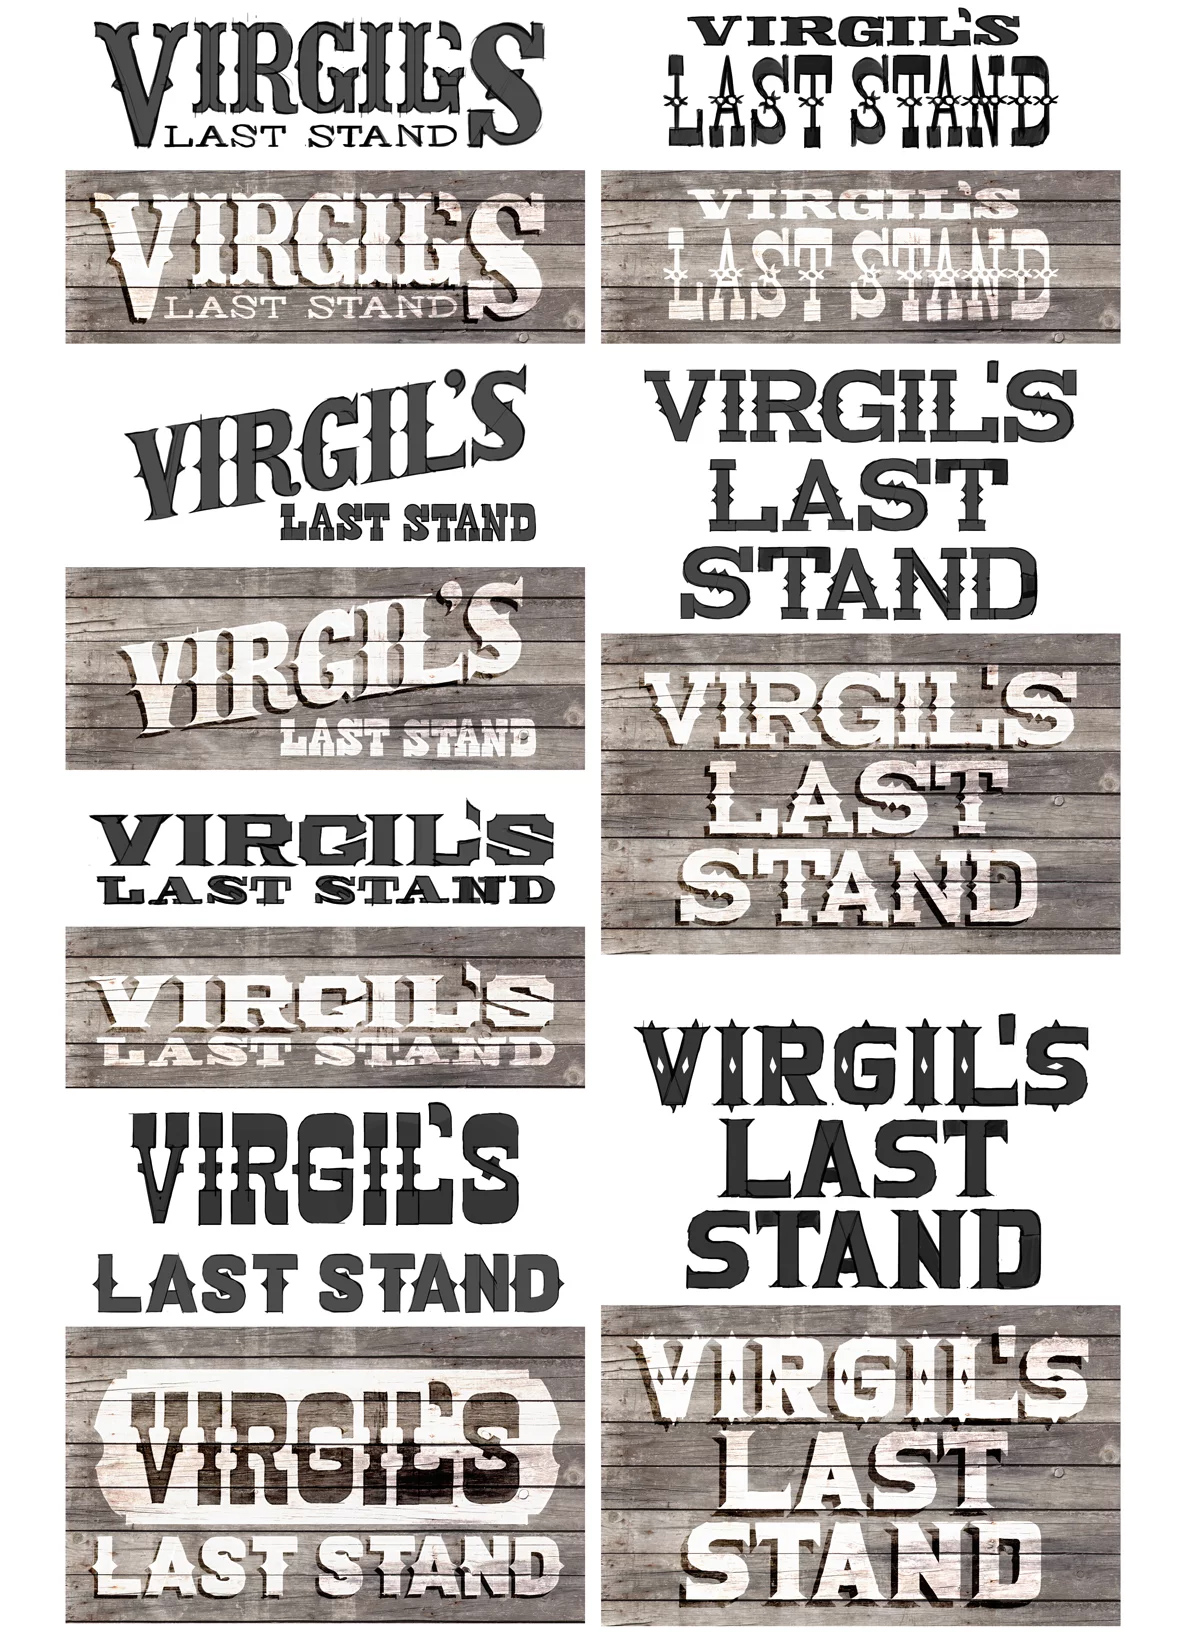 typography for the side of the roadhouse, Virgil's Last Stand